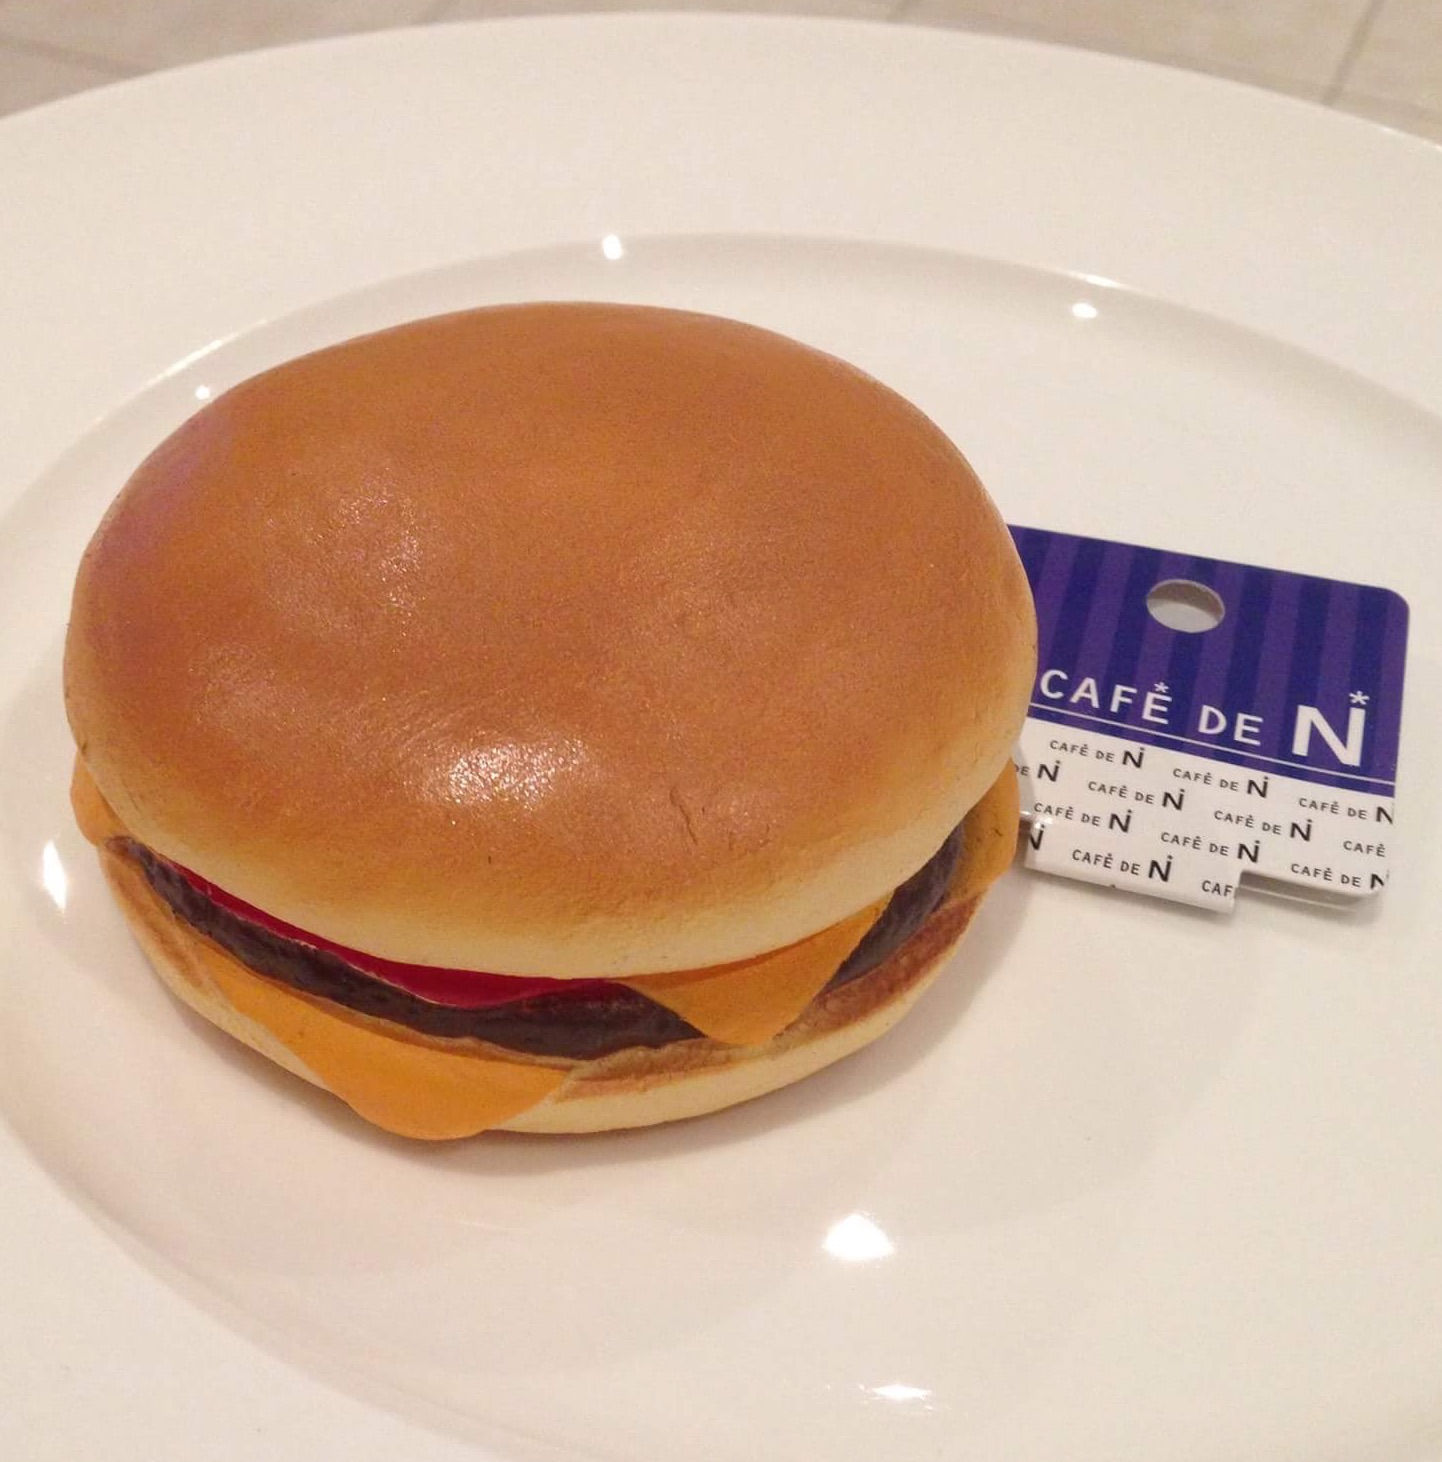 Squishy Cafe Dn : Super slow cafe de n cheeseburger squishy